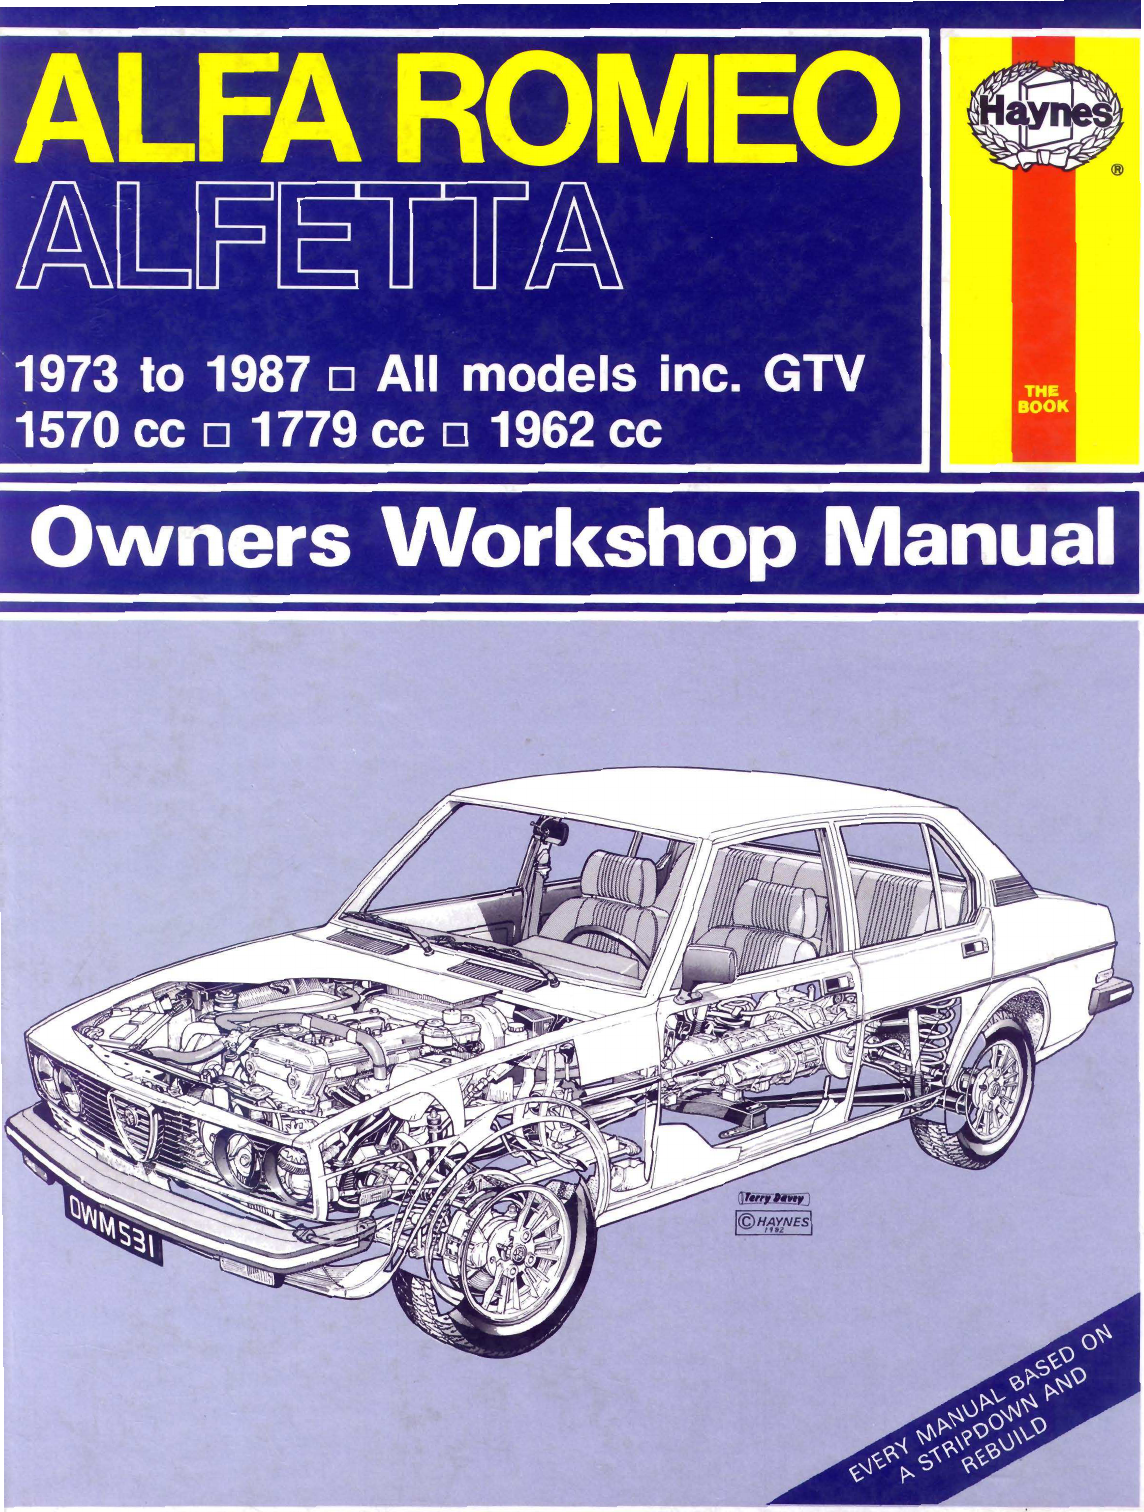 See our other Alfa Romeo Alfetta Manuals: Alfa Romeo Alfetta 1973 1987  Workshop ...